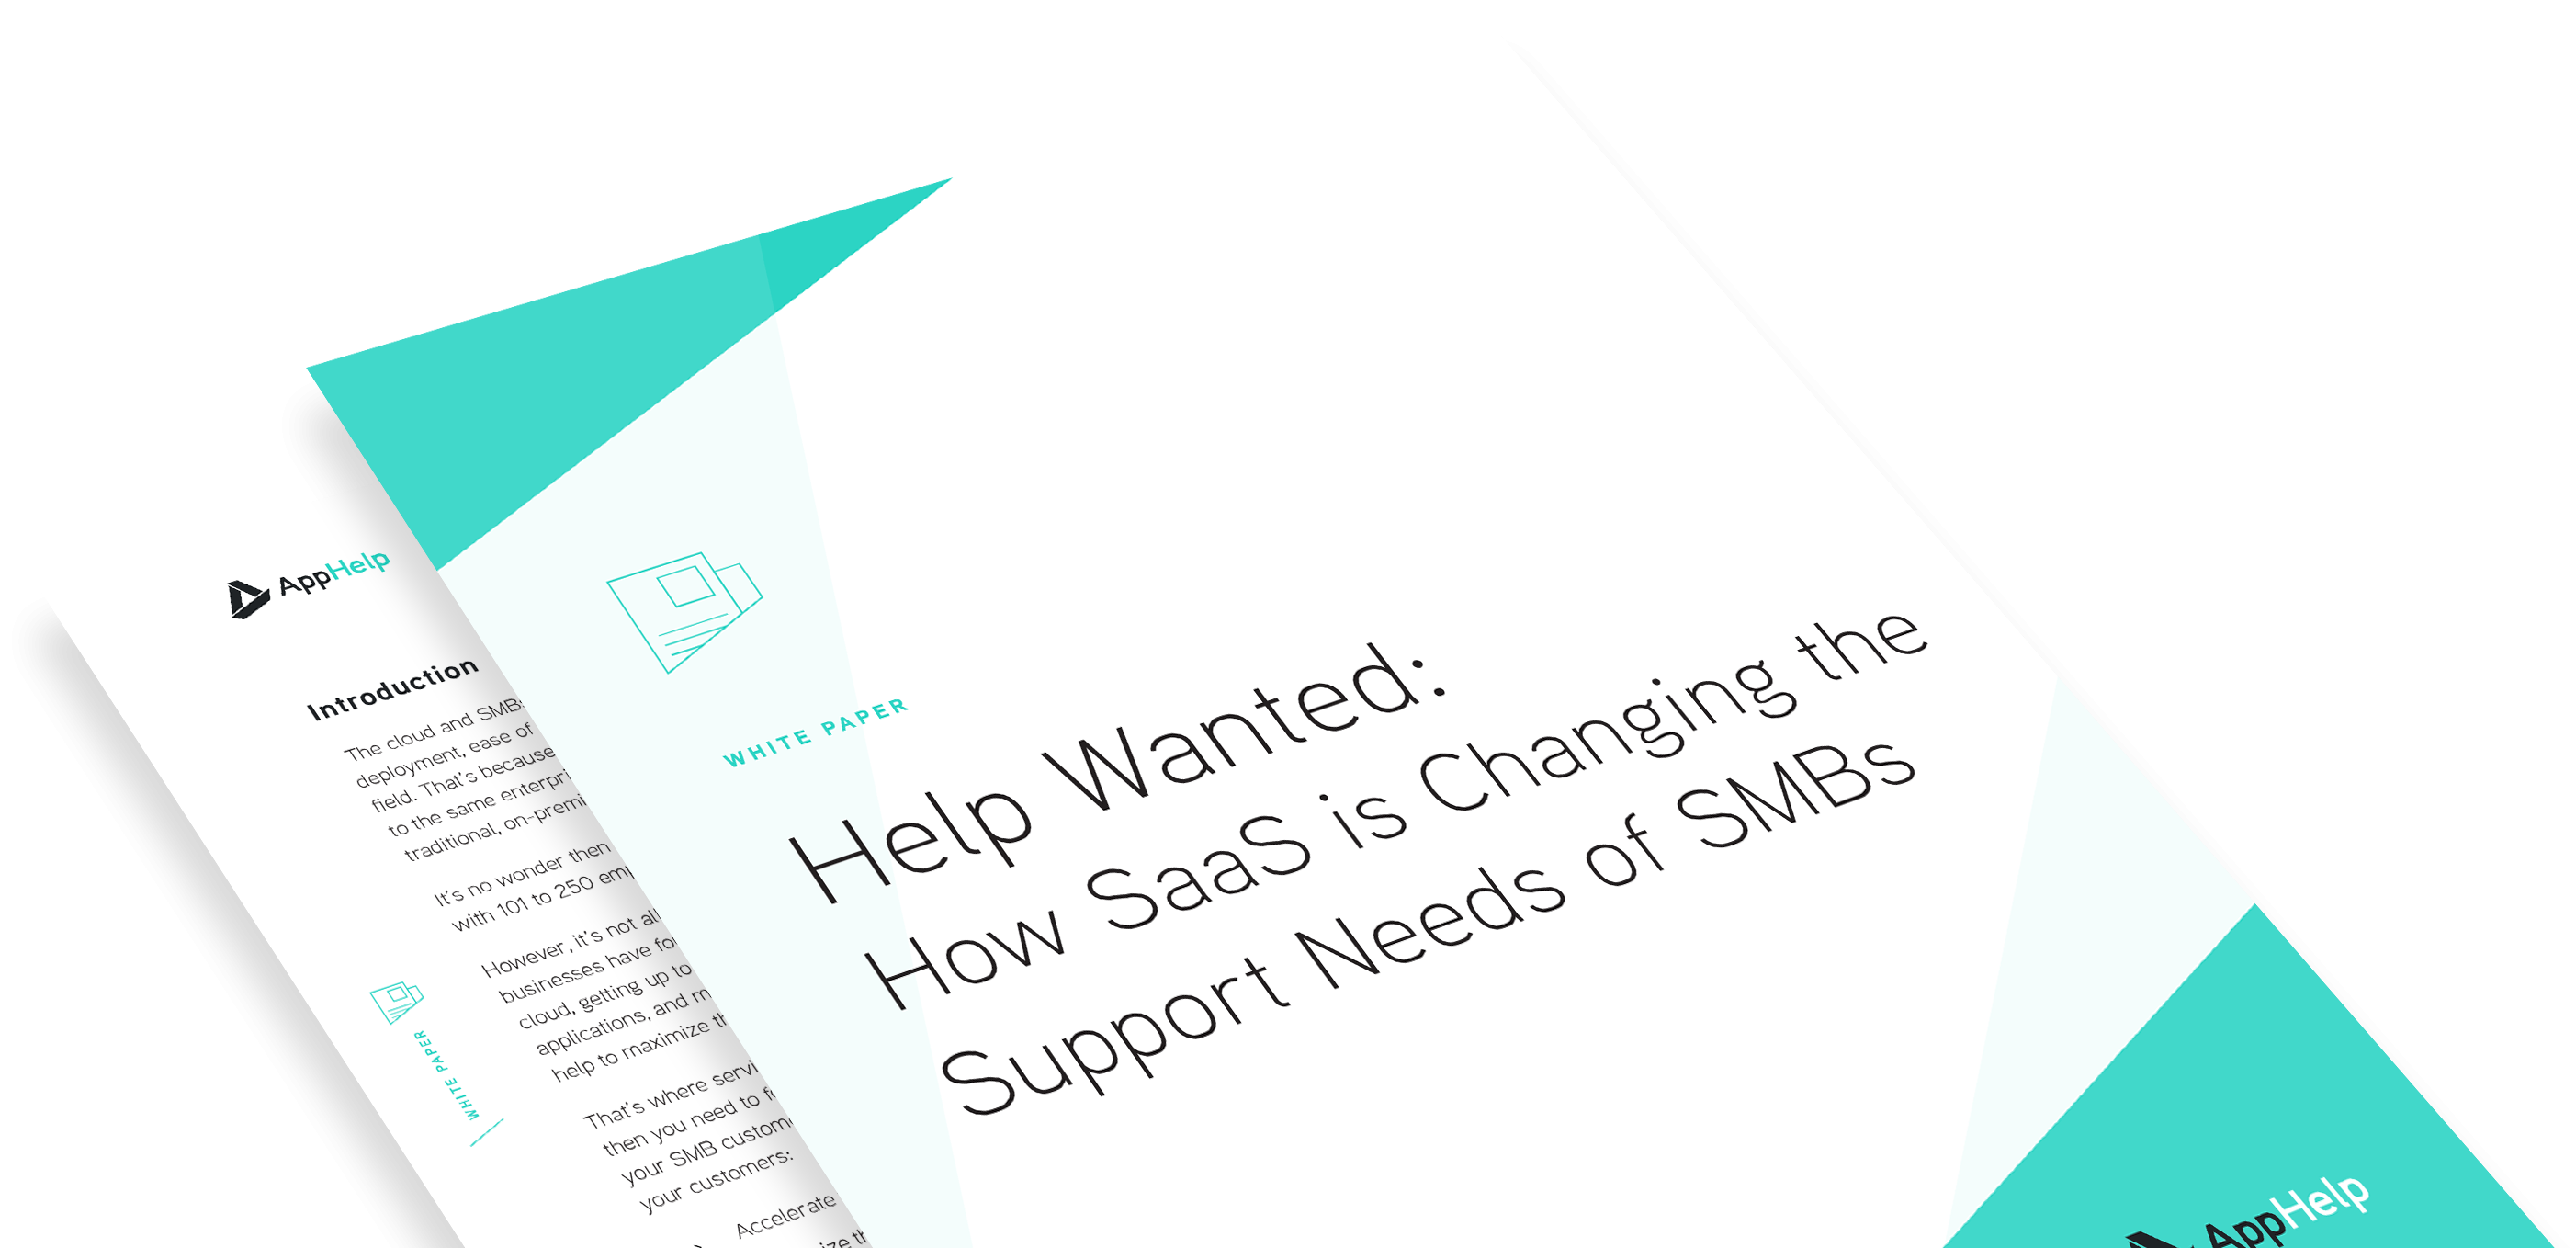 White Paper: How SaaS is Changing the Support Needs of SMBs